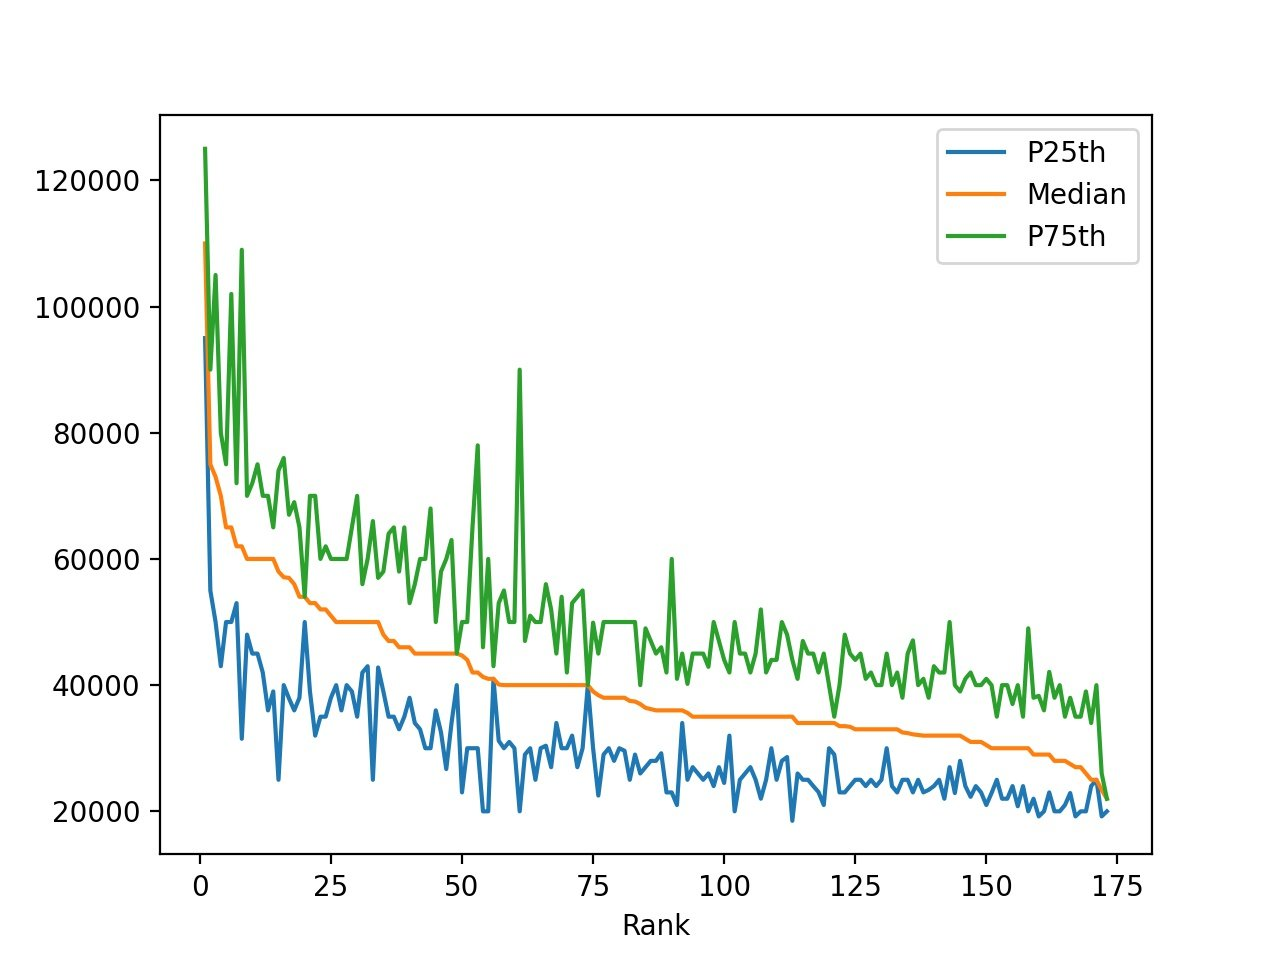 line plot with P25, median, P75 earnings